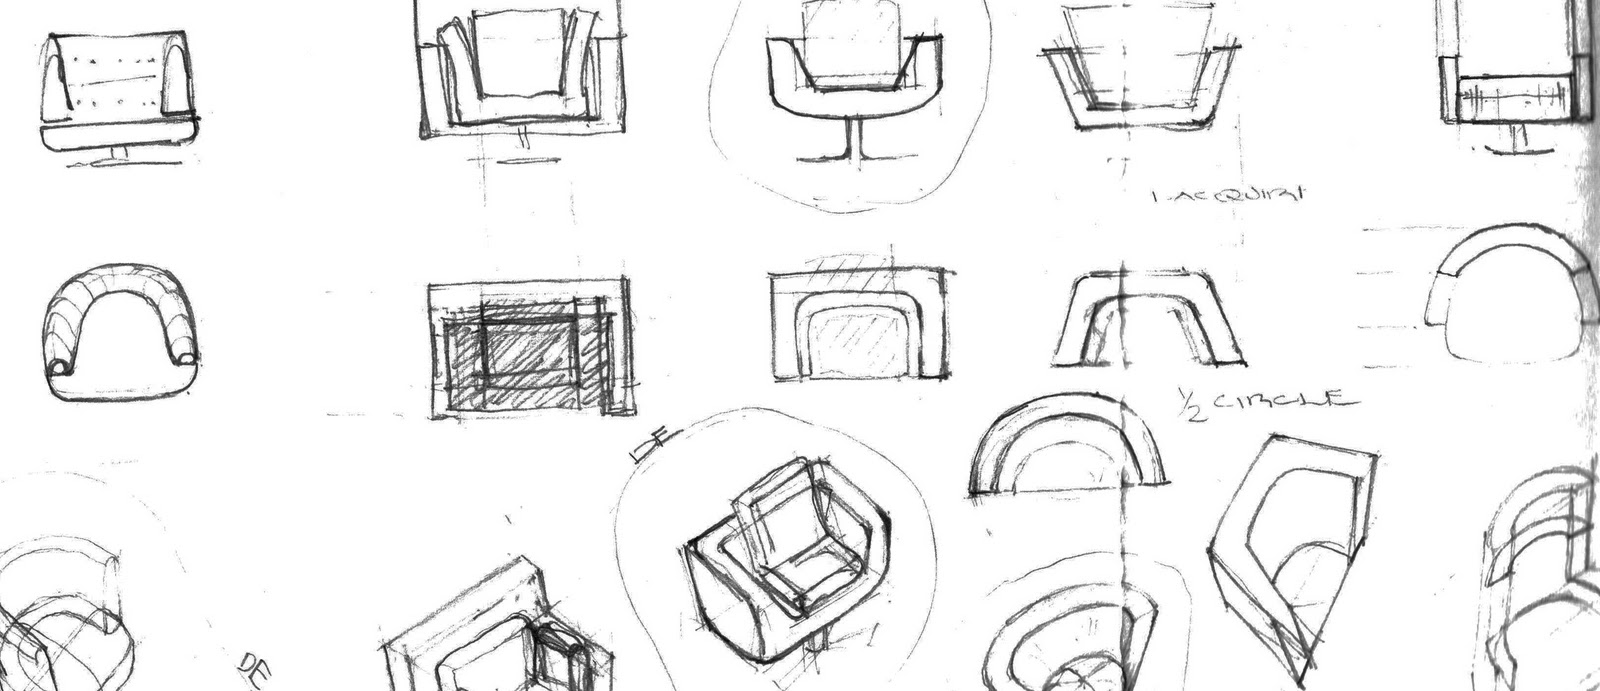 Hand drafting in design arch college of design business - Hand drafting for interior design ...